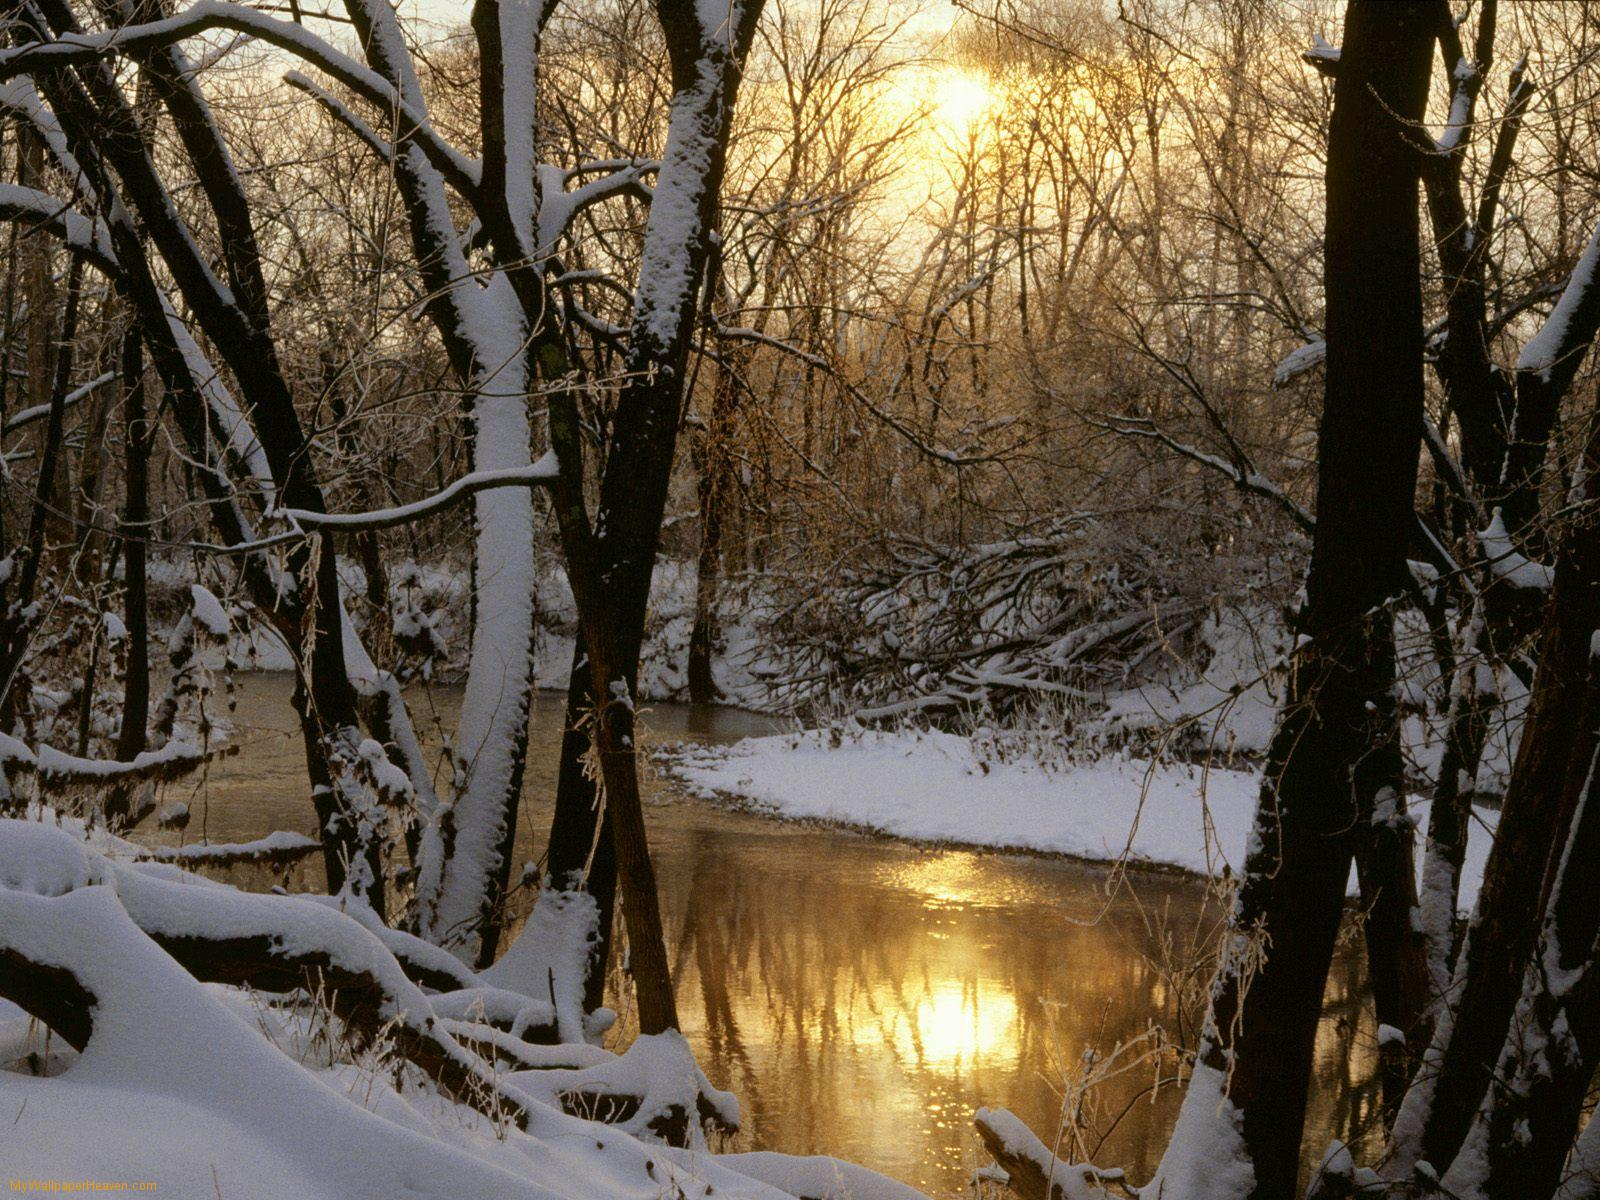 https://writesomewhatnot.files.wordpress.com/2012/12/winter-scenes-nature-harpeth-river-sunrise-1771941.jpg